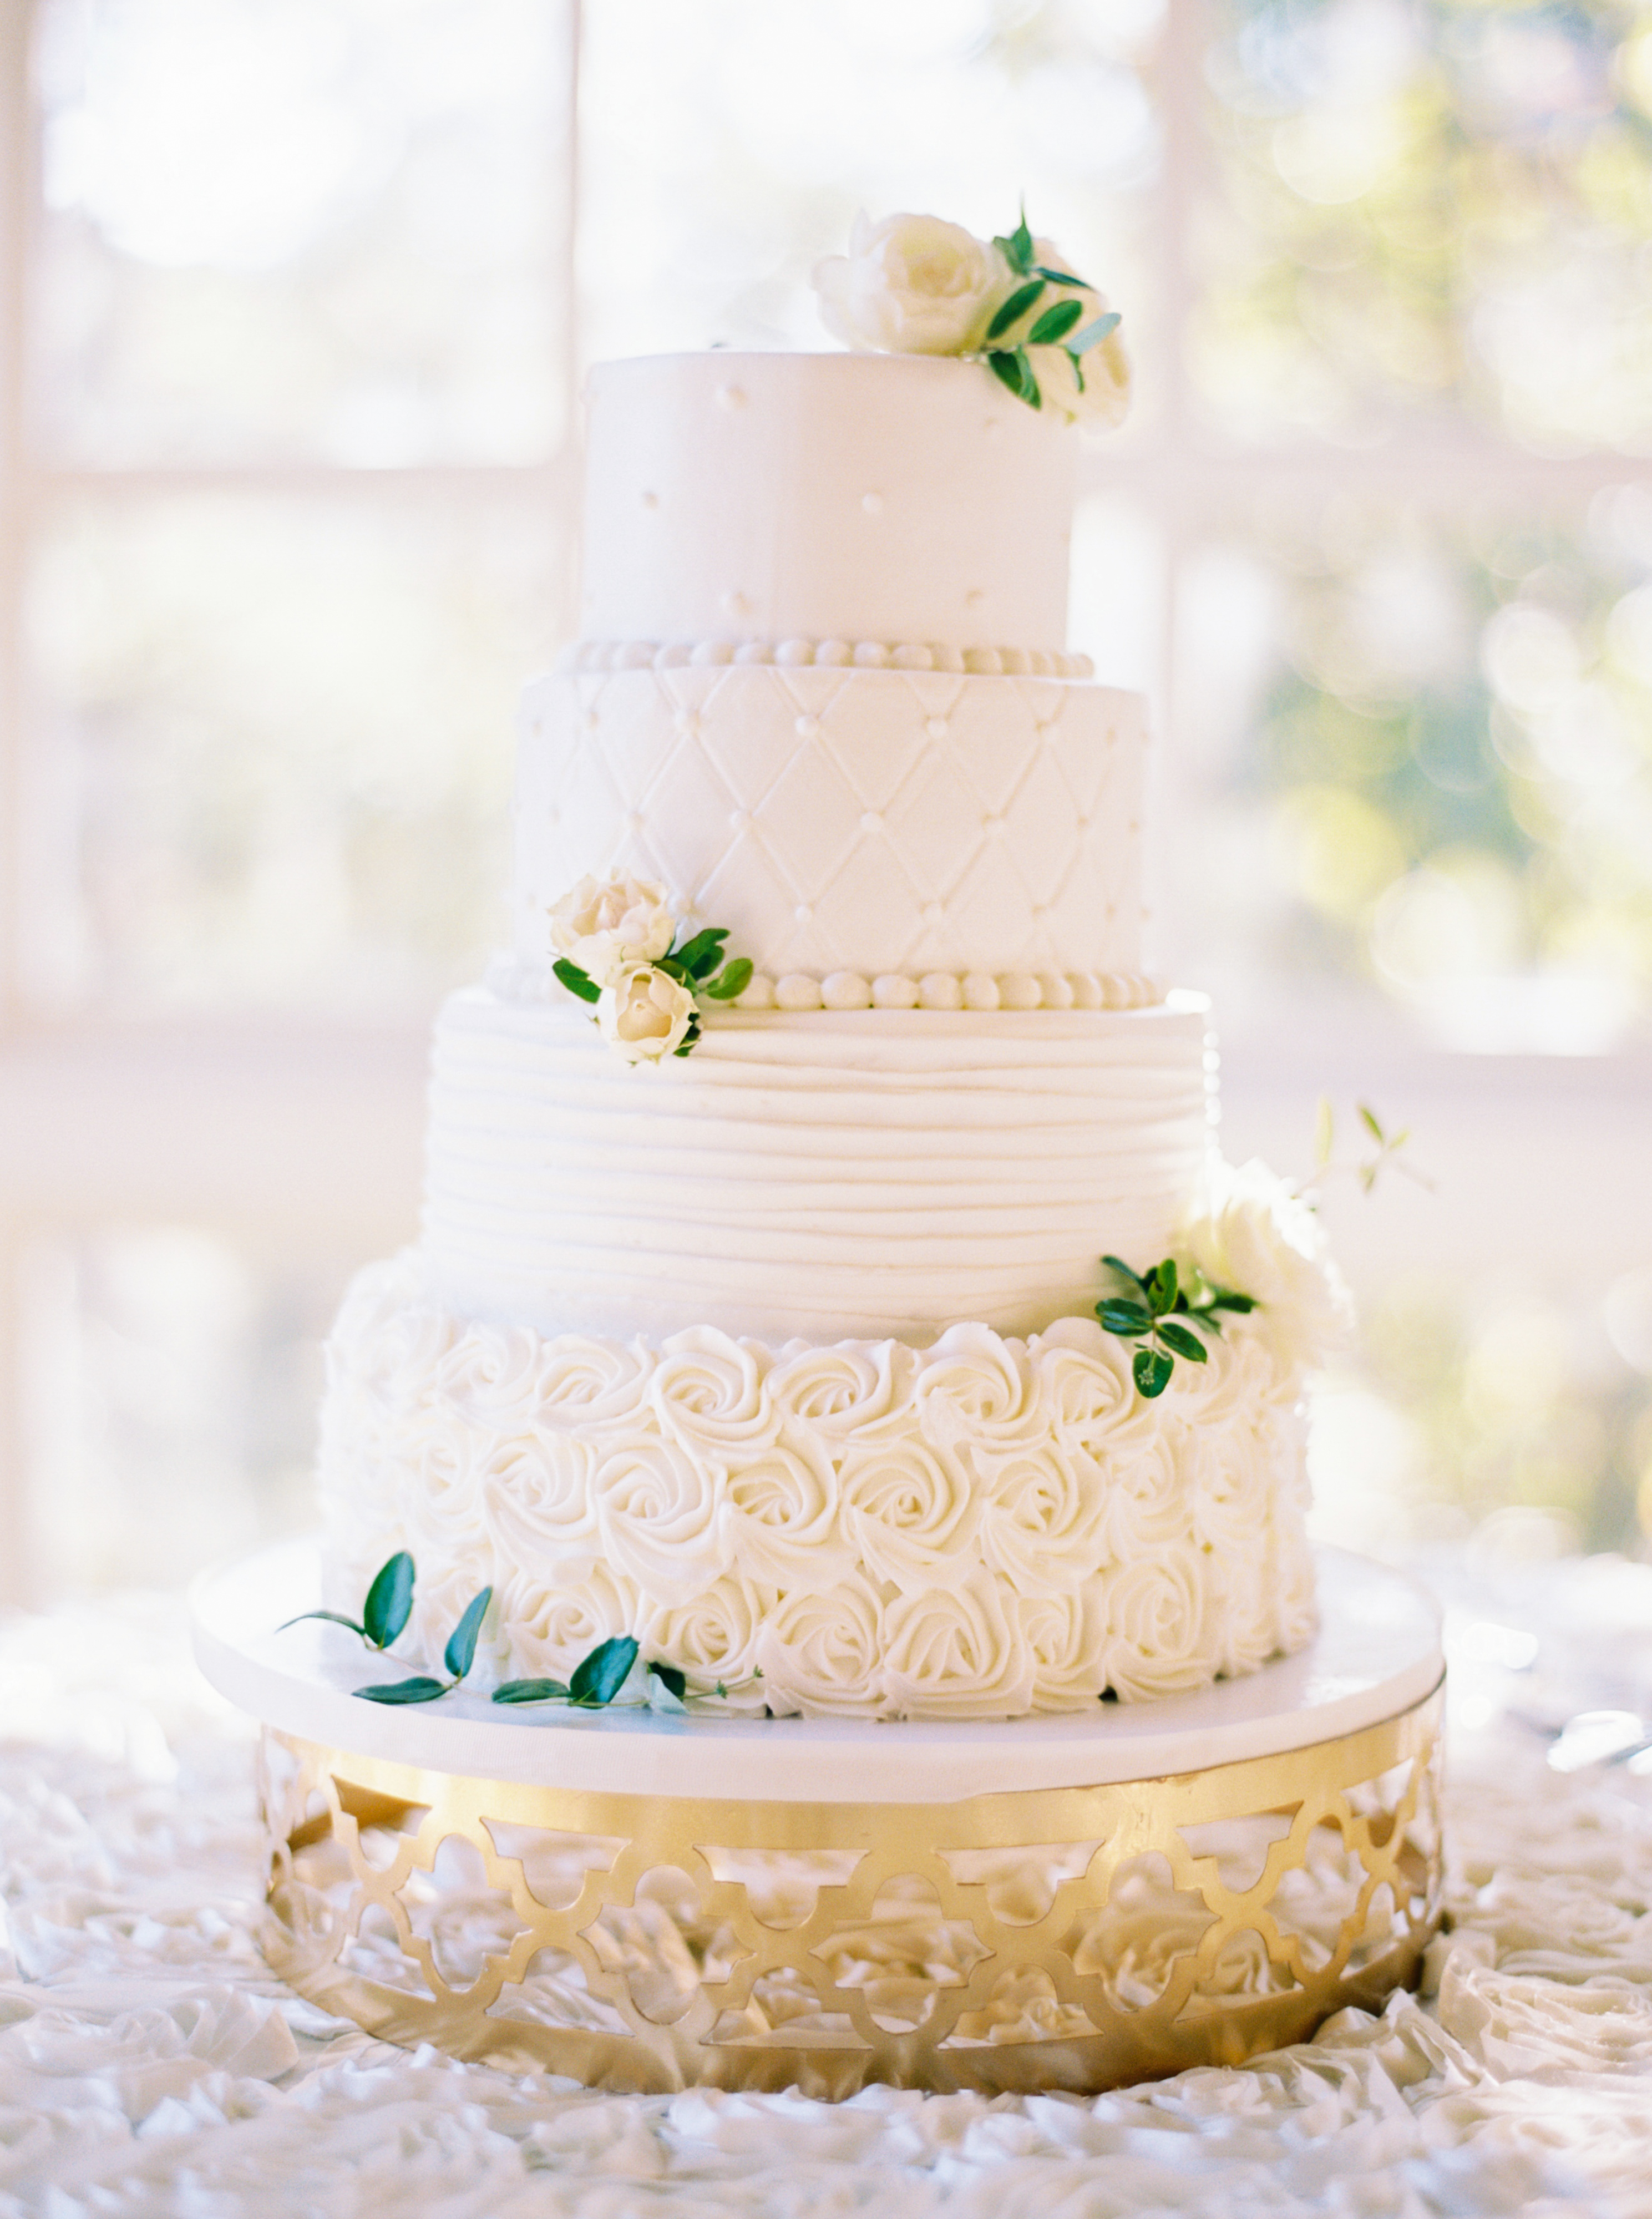 The Ultimate Guide To Wedding Cakes - BridalPulse